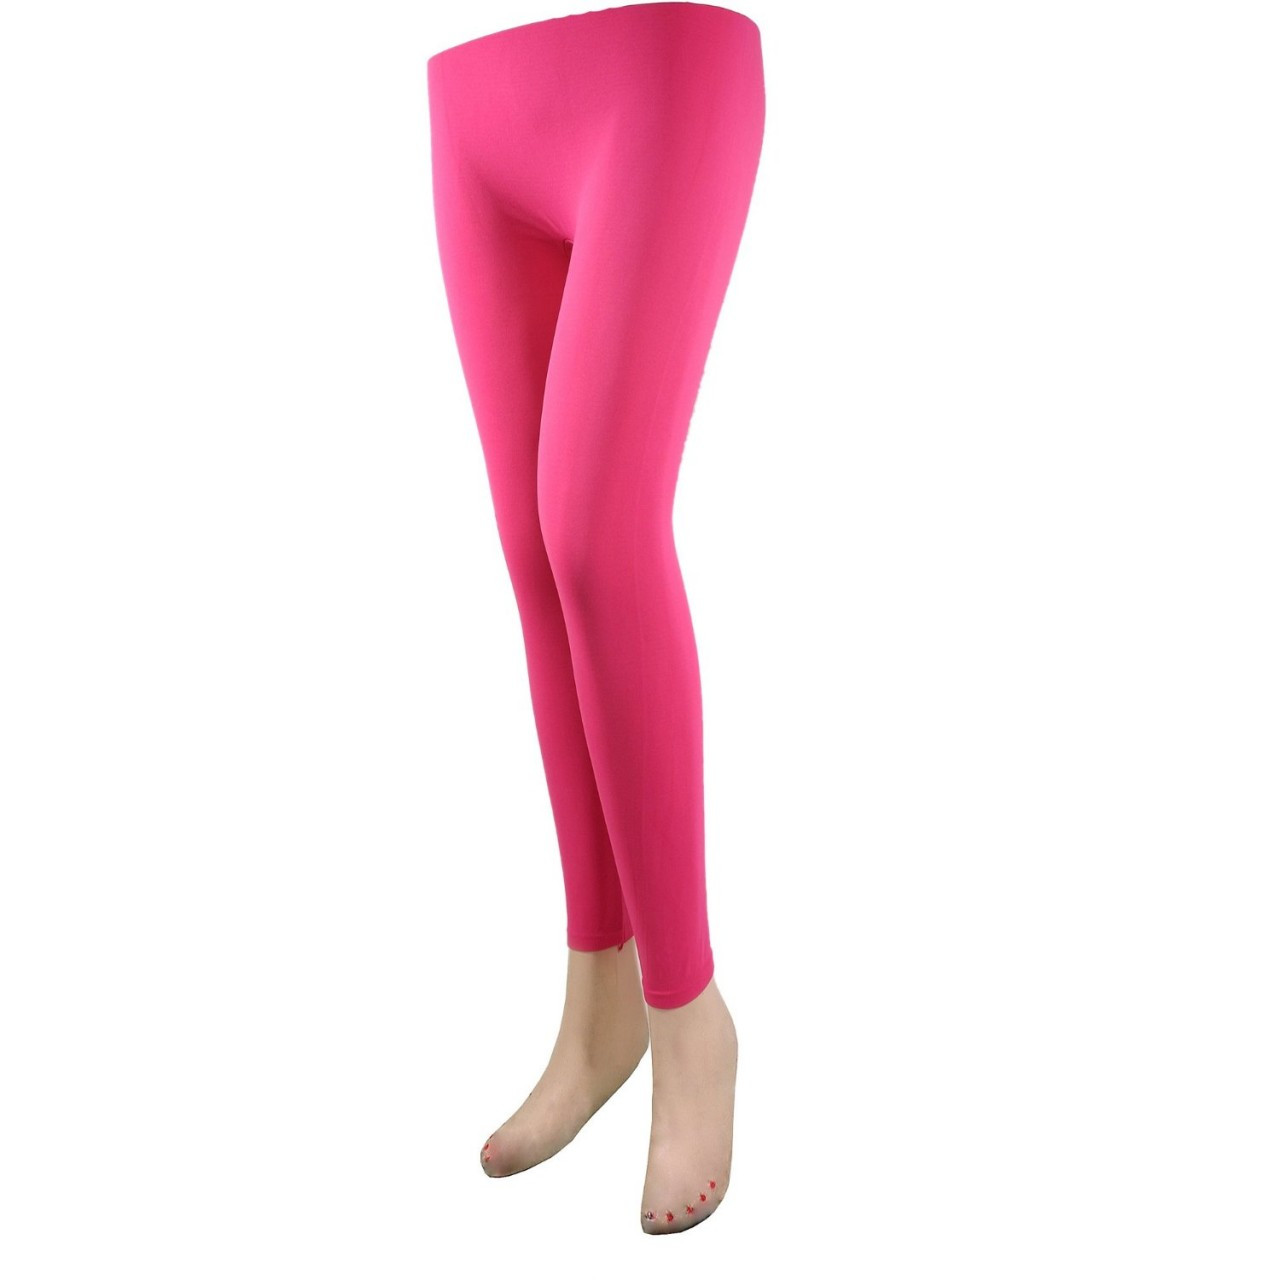 83c951d66ca72 Hot Pink Footless Tights 8096. Price: $4.00. Image 1. Larger / More Photos